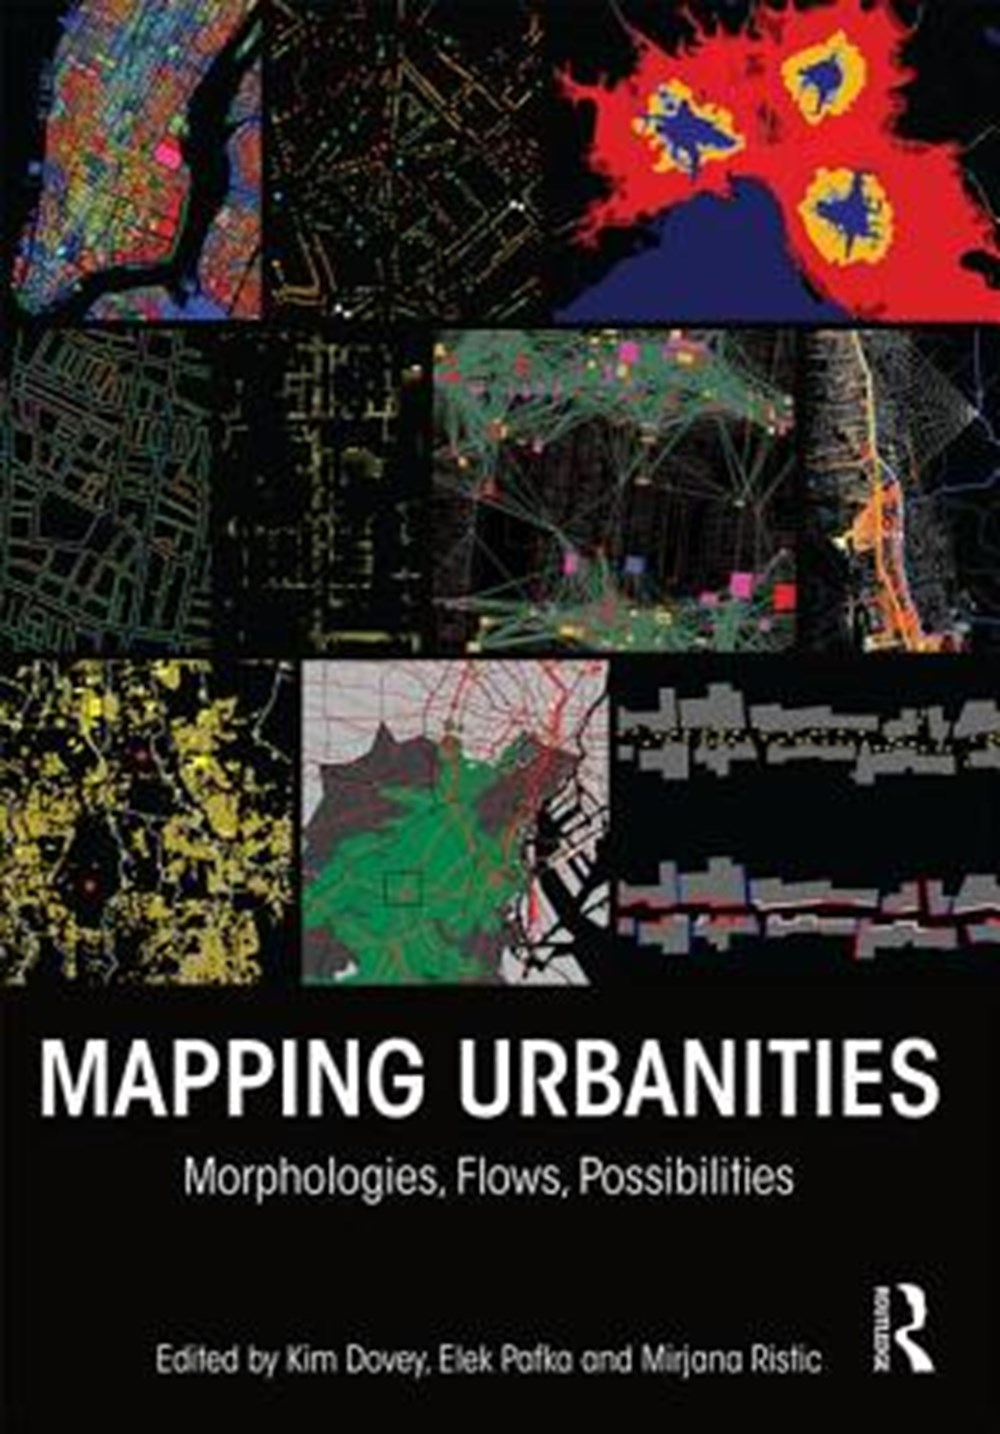 Mapping Urbanities Morphologies, Flows, Possibilities